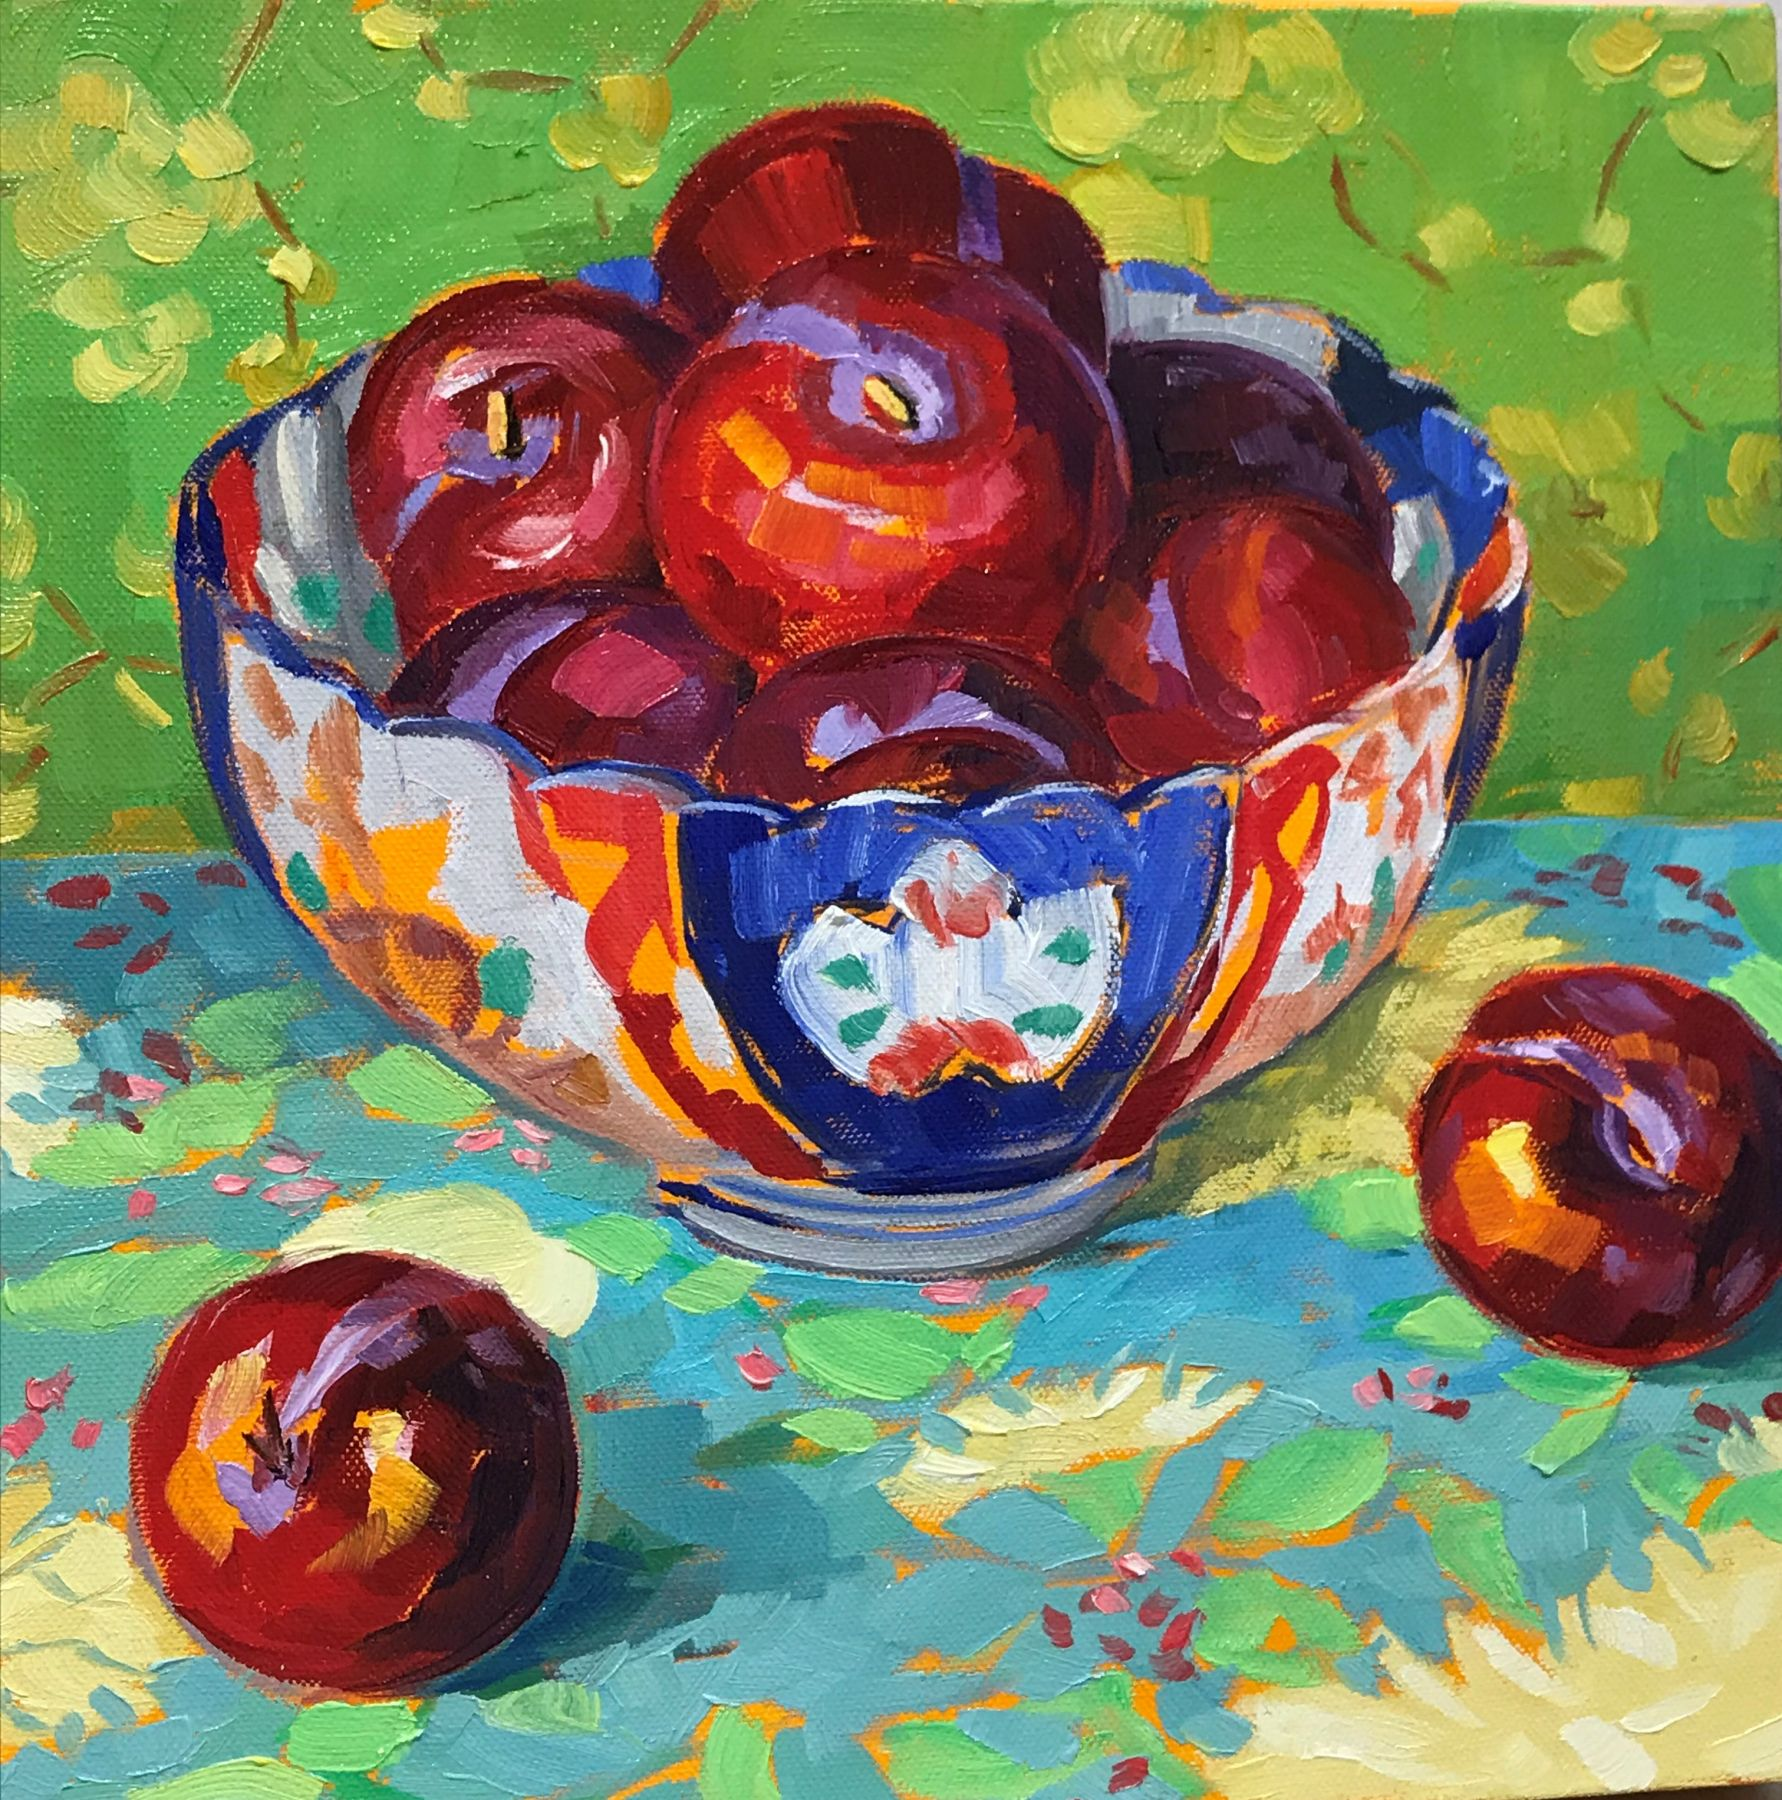 Red Plums in an Imari Dish, 12x12